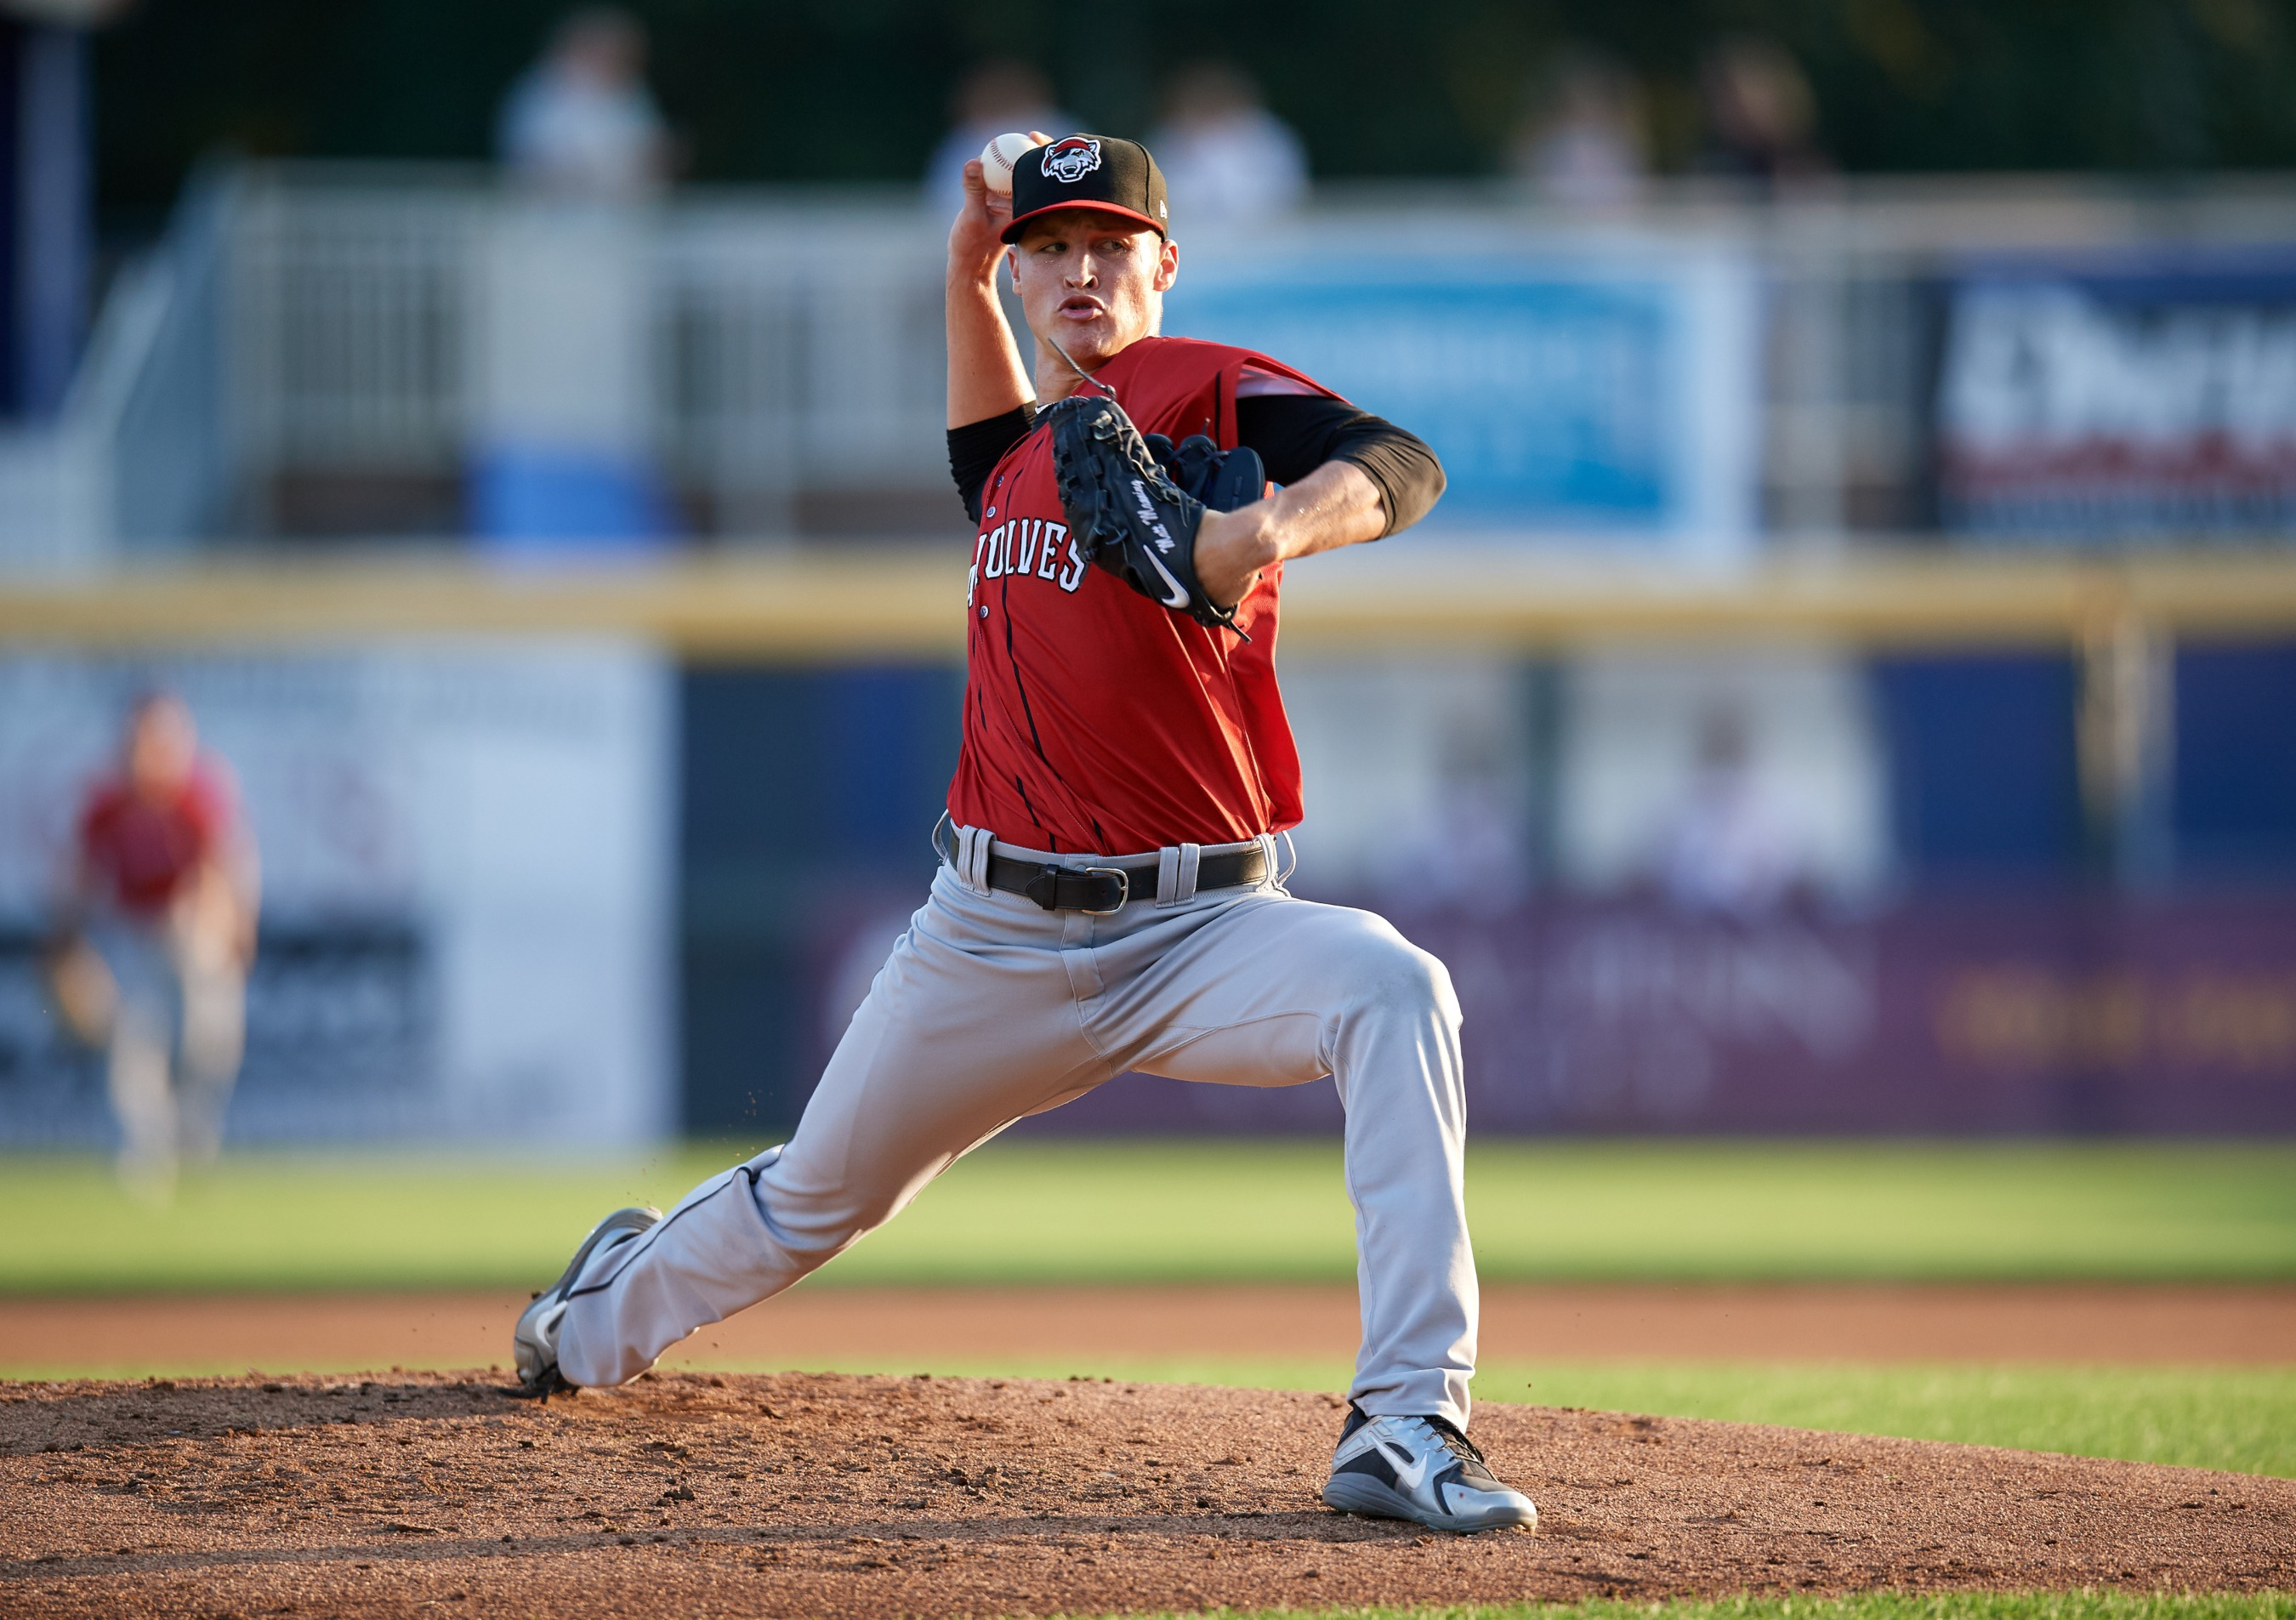 2019 Eastern League Top 20 Prospects Chat (9/25/19)